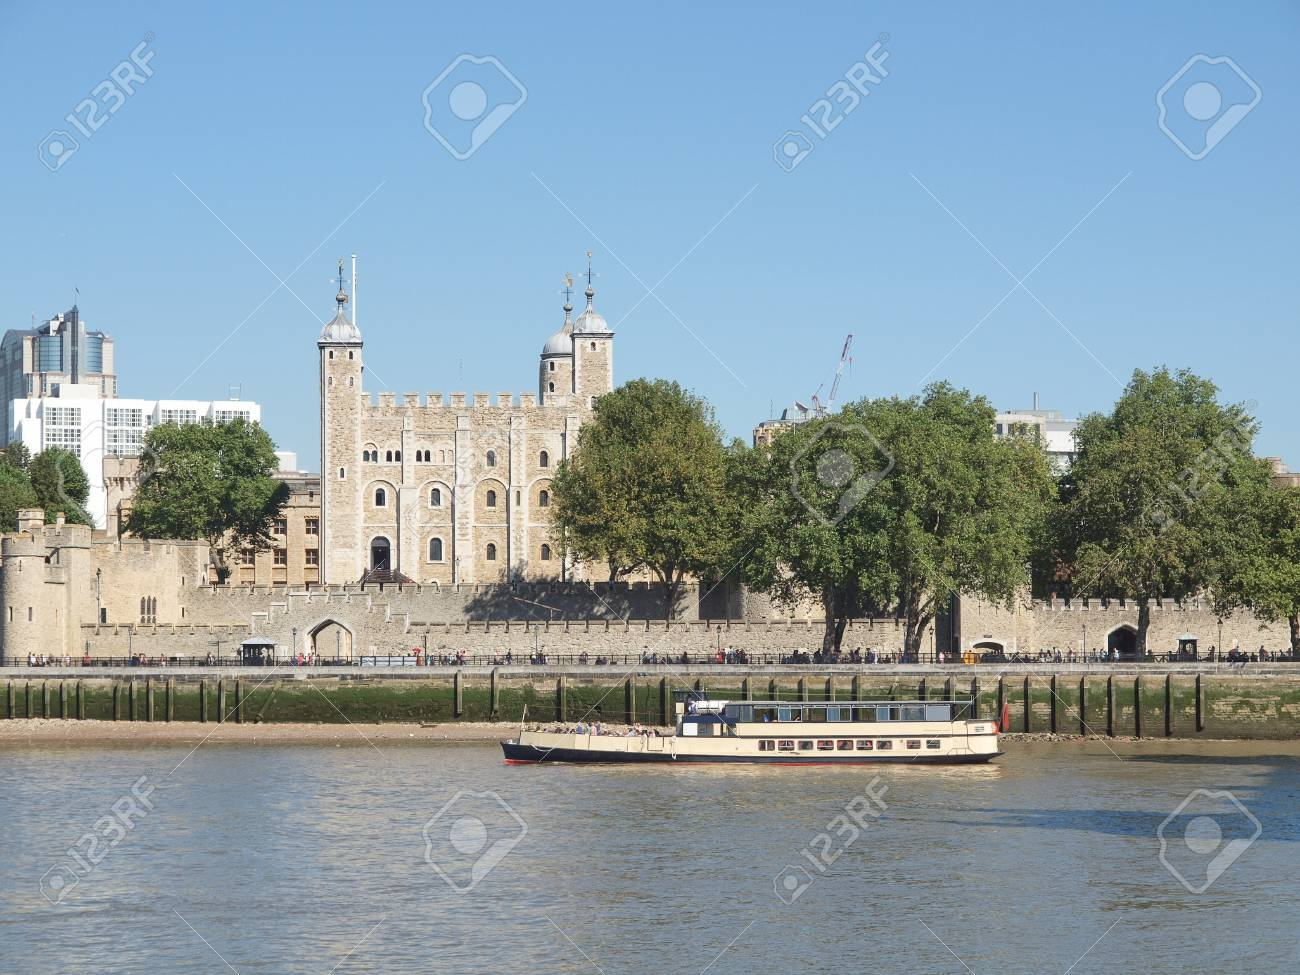 The Tower of London medieval castle and prison Stock Photo - 15792640